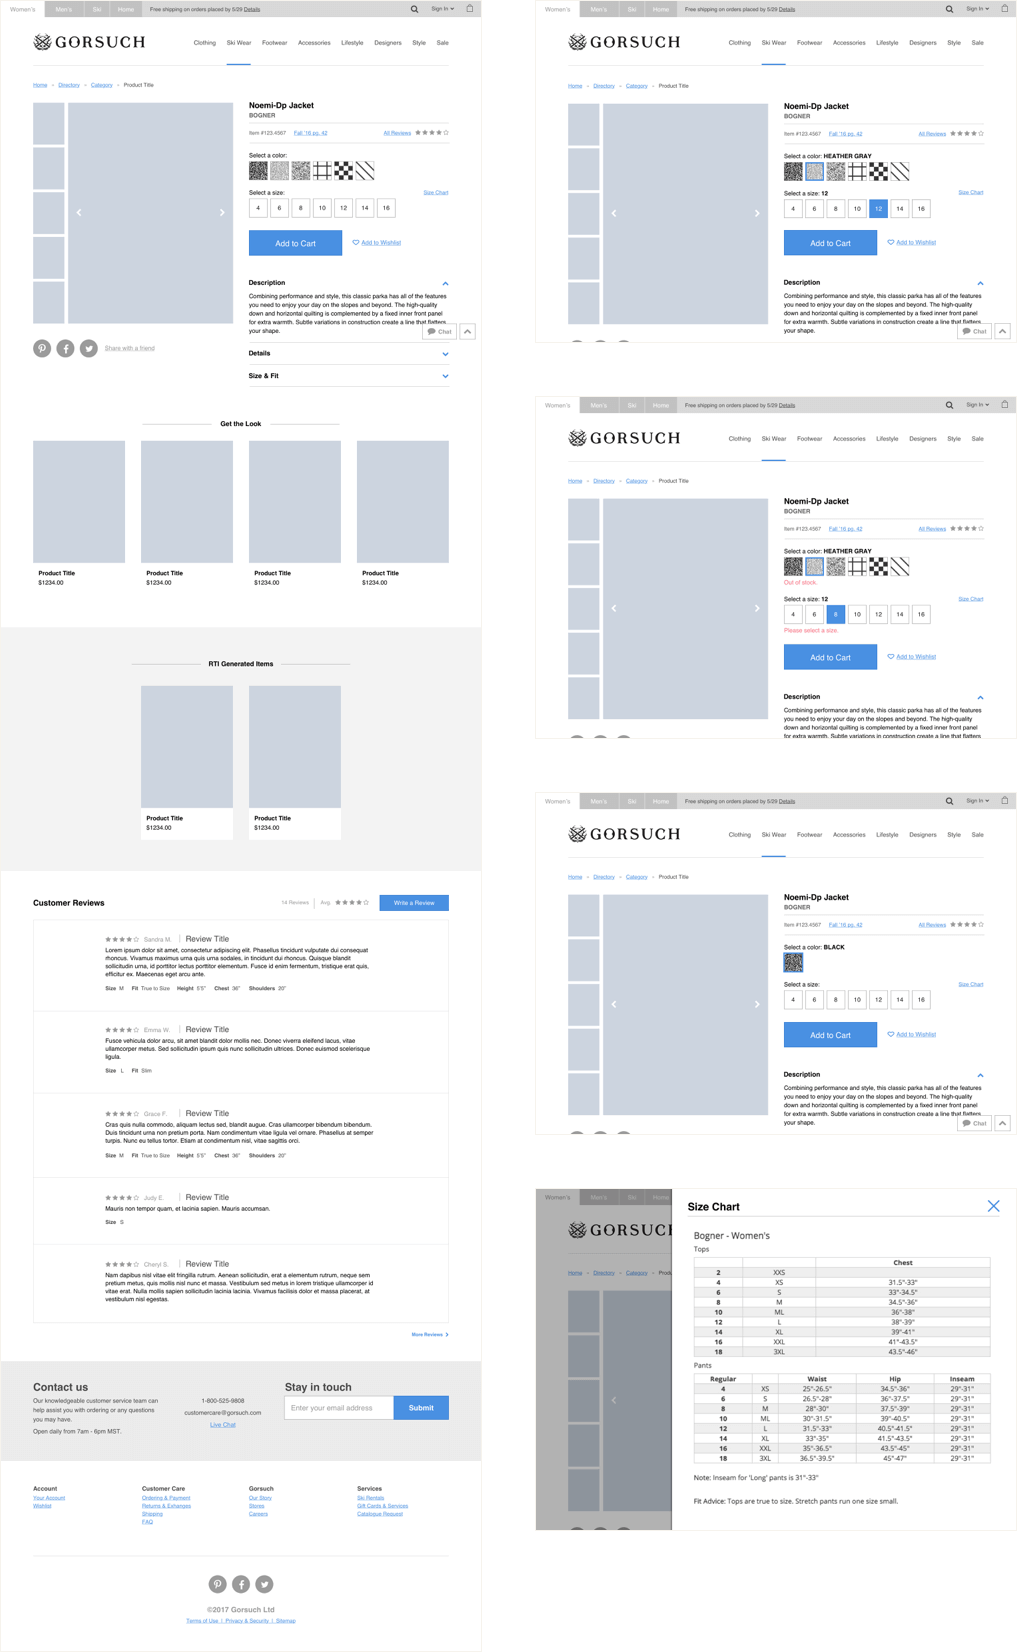 Desktop wireframe showing the layout of the product page.